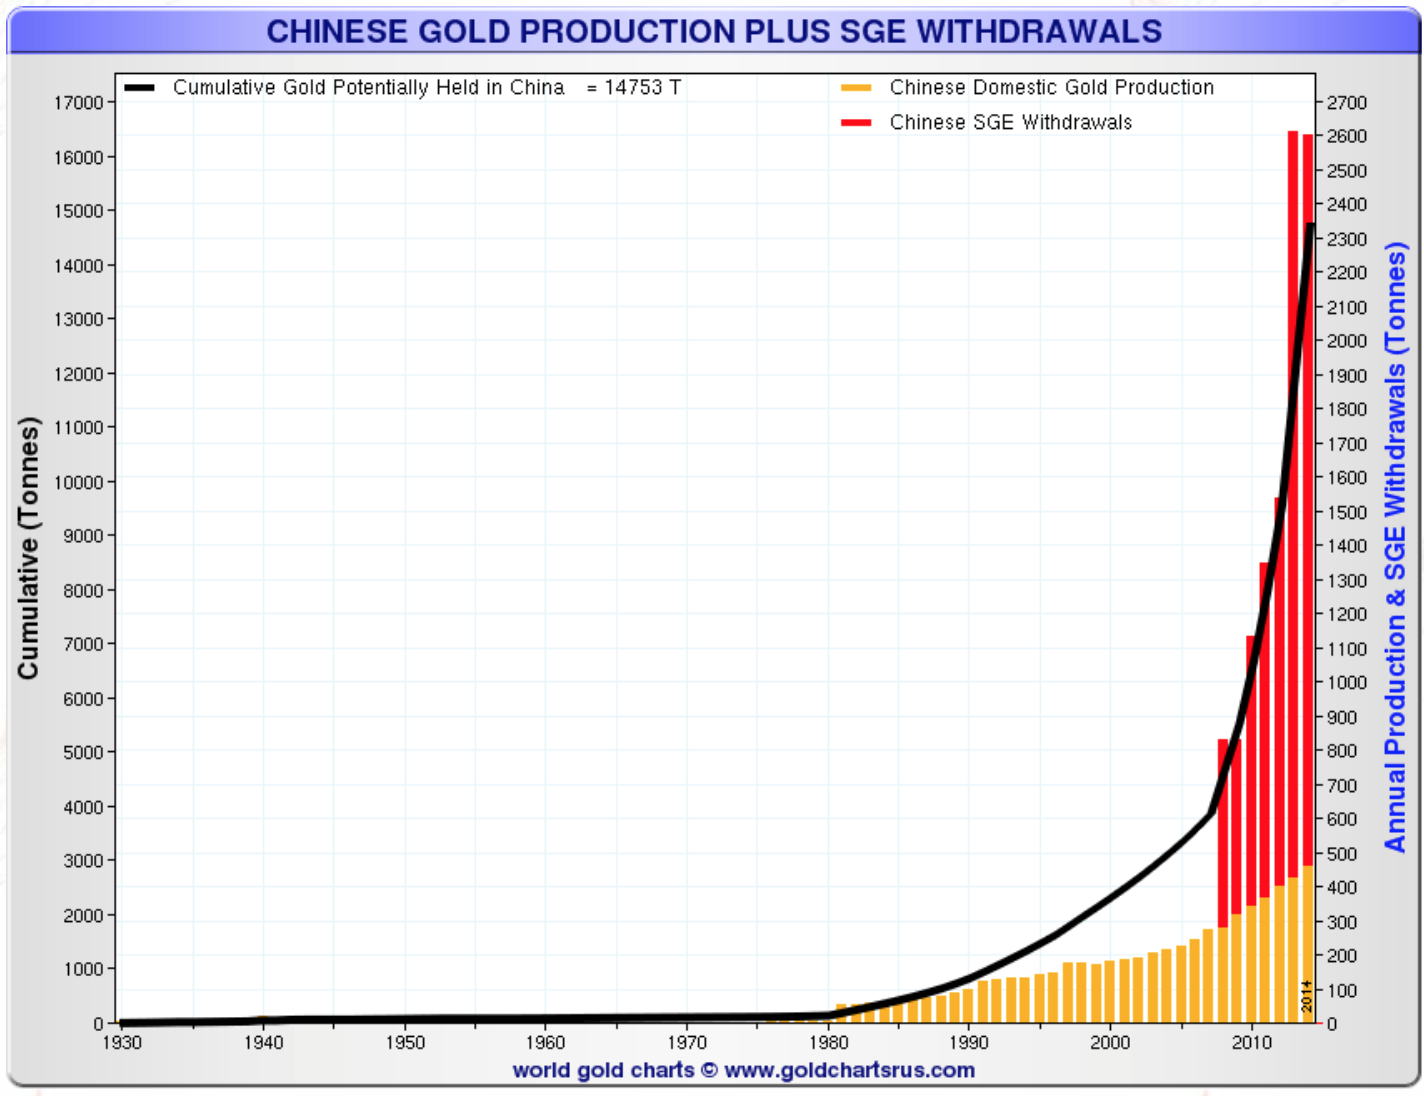 Chinese gold production plus SGE withdrawals